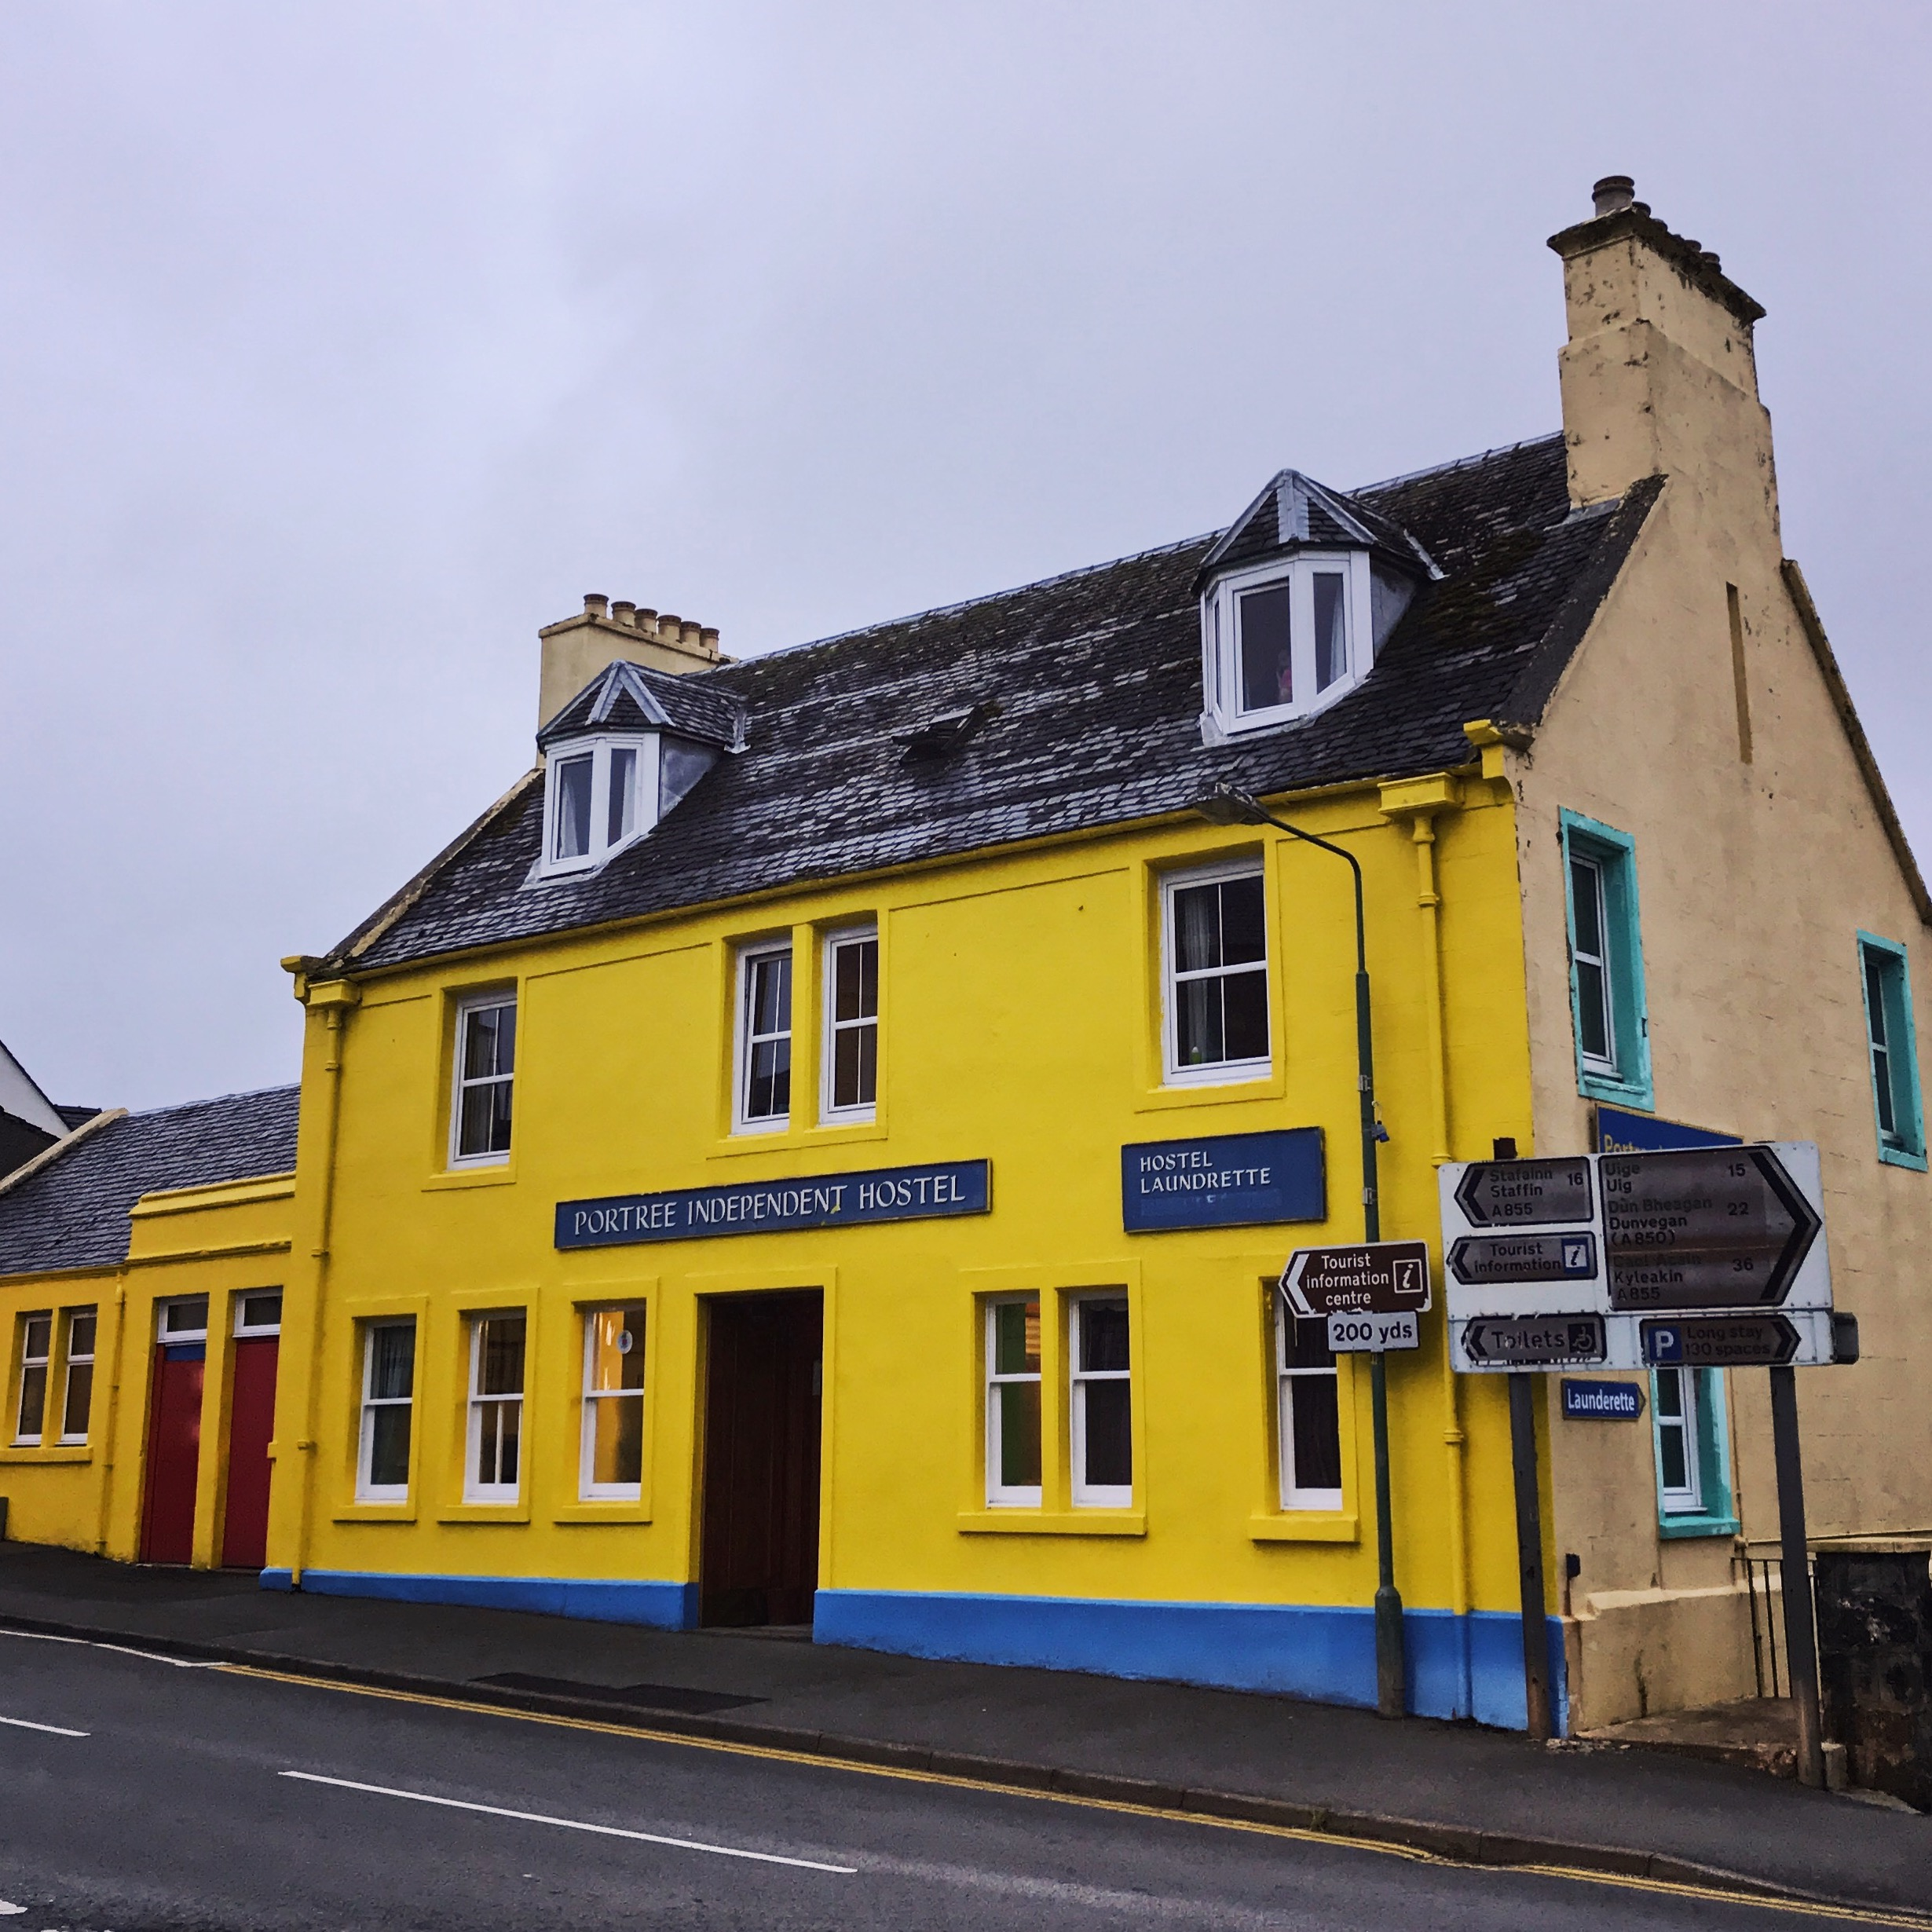 If hostels are your thing, the bright yellow  Portree Independent Hostel is in the heart of everything, and it used to be a post office, which sends the cuteness right off the charts. Book your accommodation as early as you can.